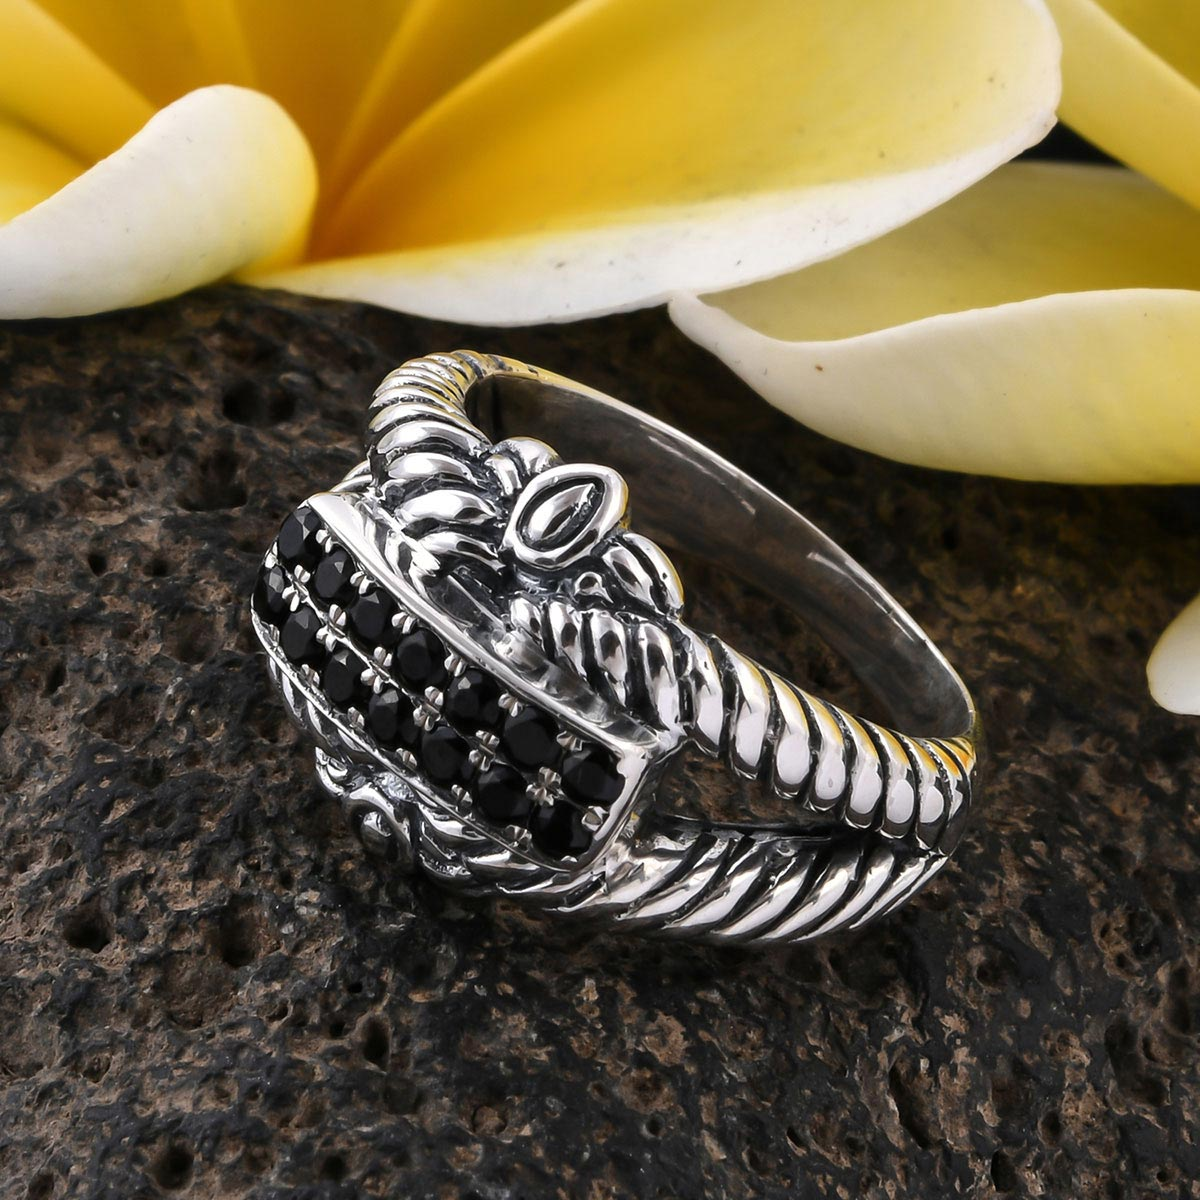 BALI LEGACY Thai Black Spinel Ring in Sterling Silver (Size 9.0) 0.60 ctw